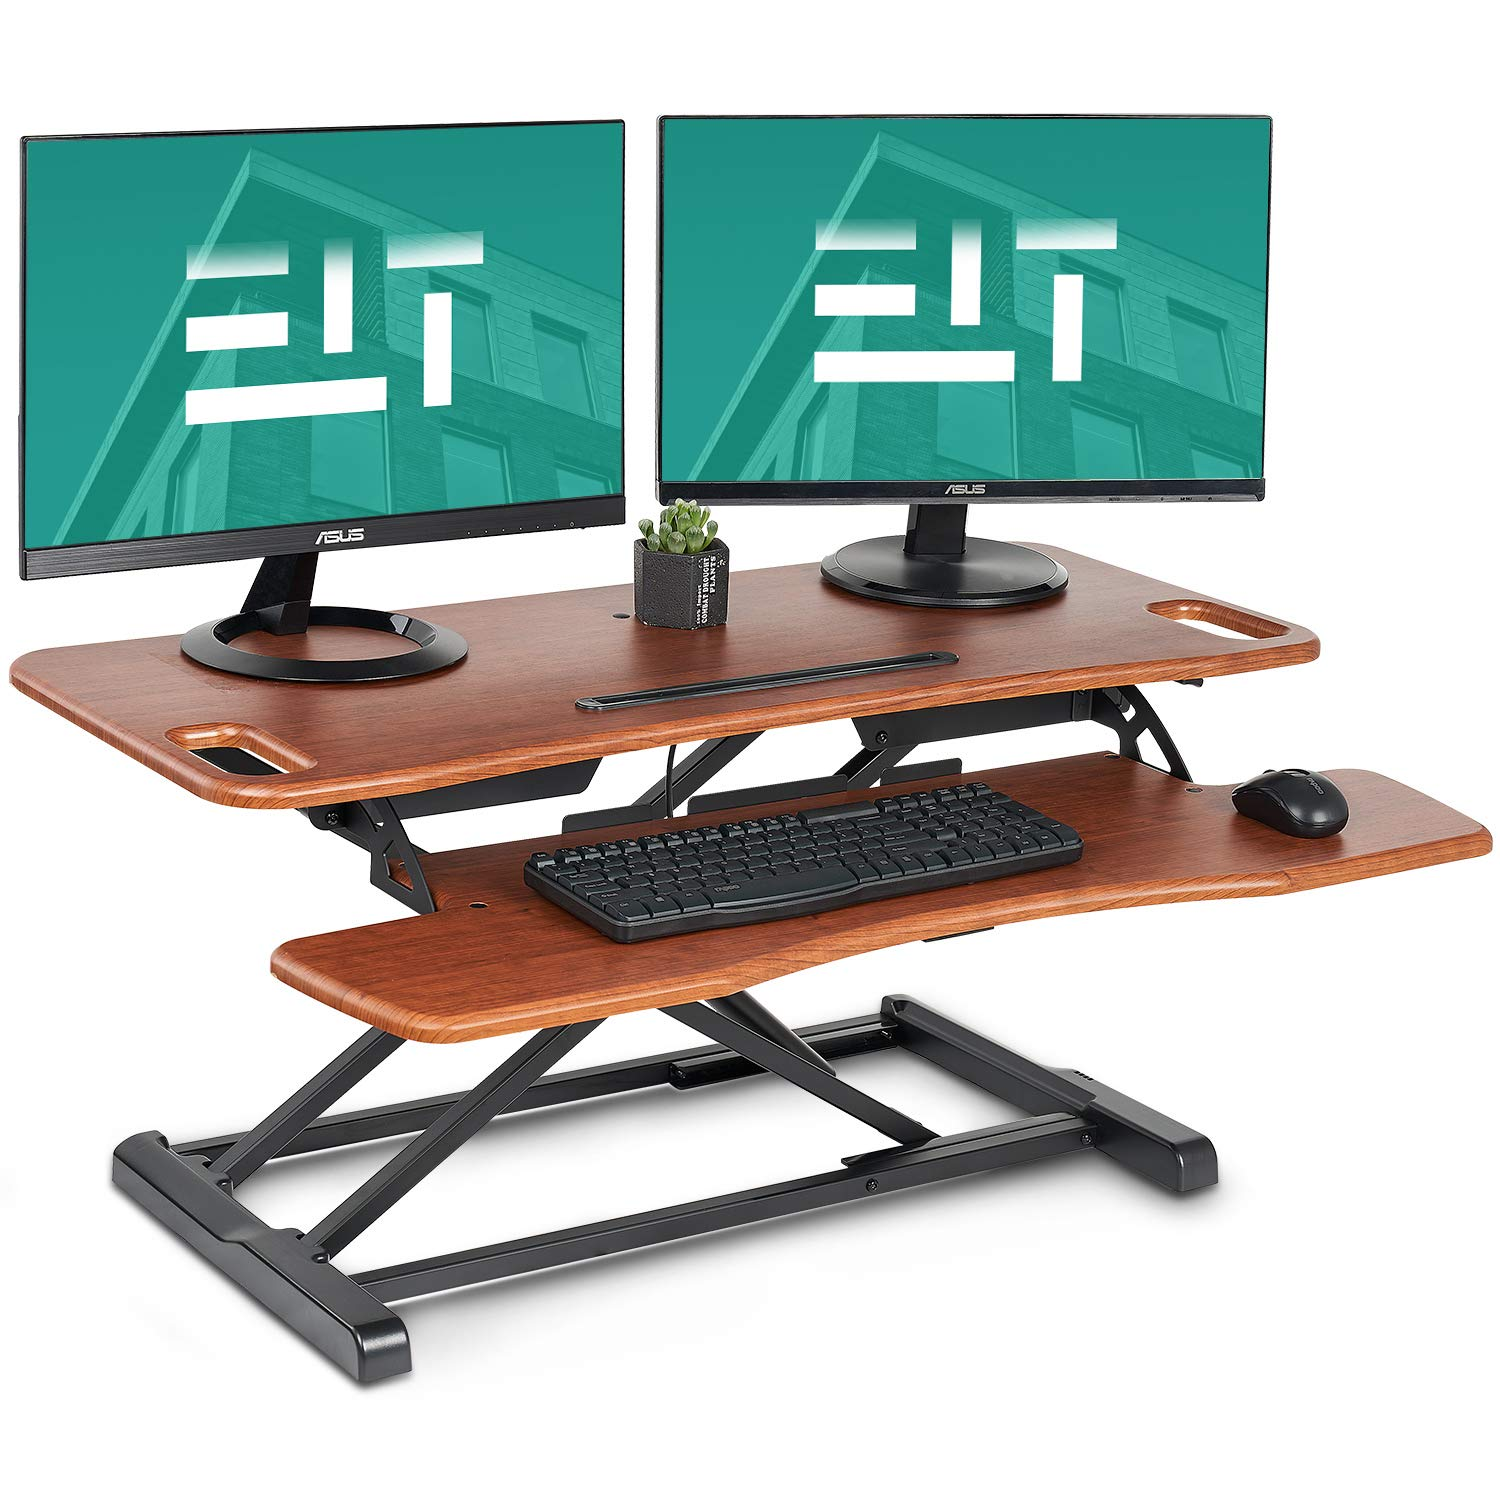 EleTab Height Adjustable Standing Desk Sit to Stand Gas Spring Riser Converter 37 inches Tabletop Workstation fits Dual Monitor Brown-nut by EleTab